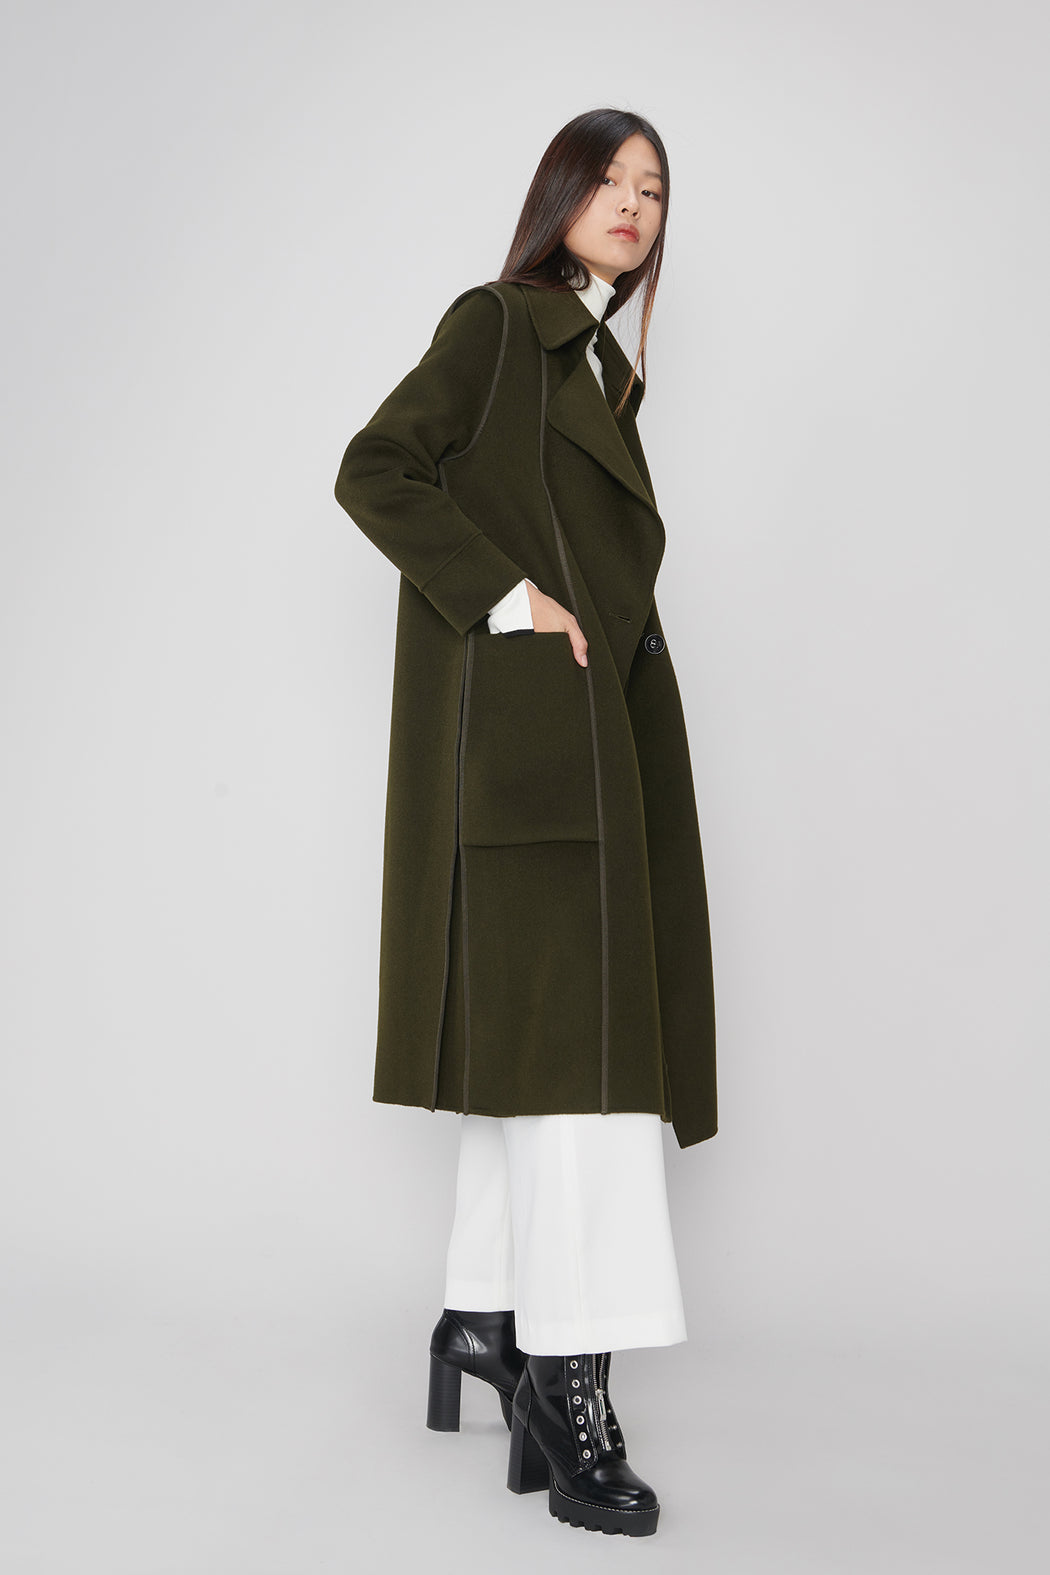 JL055A Olive Green wool Coat